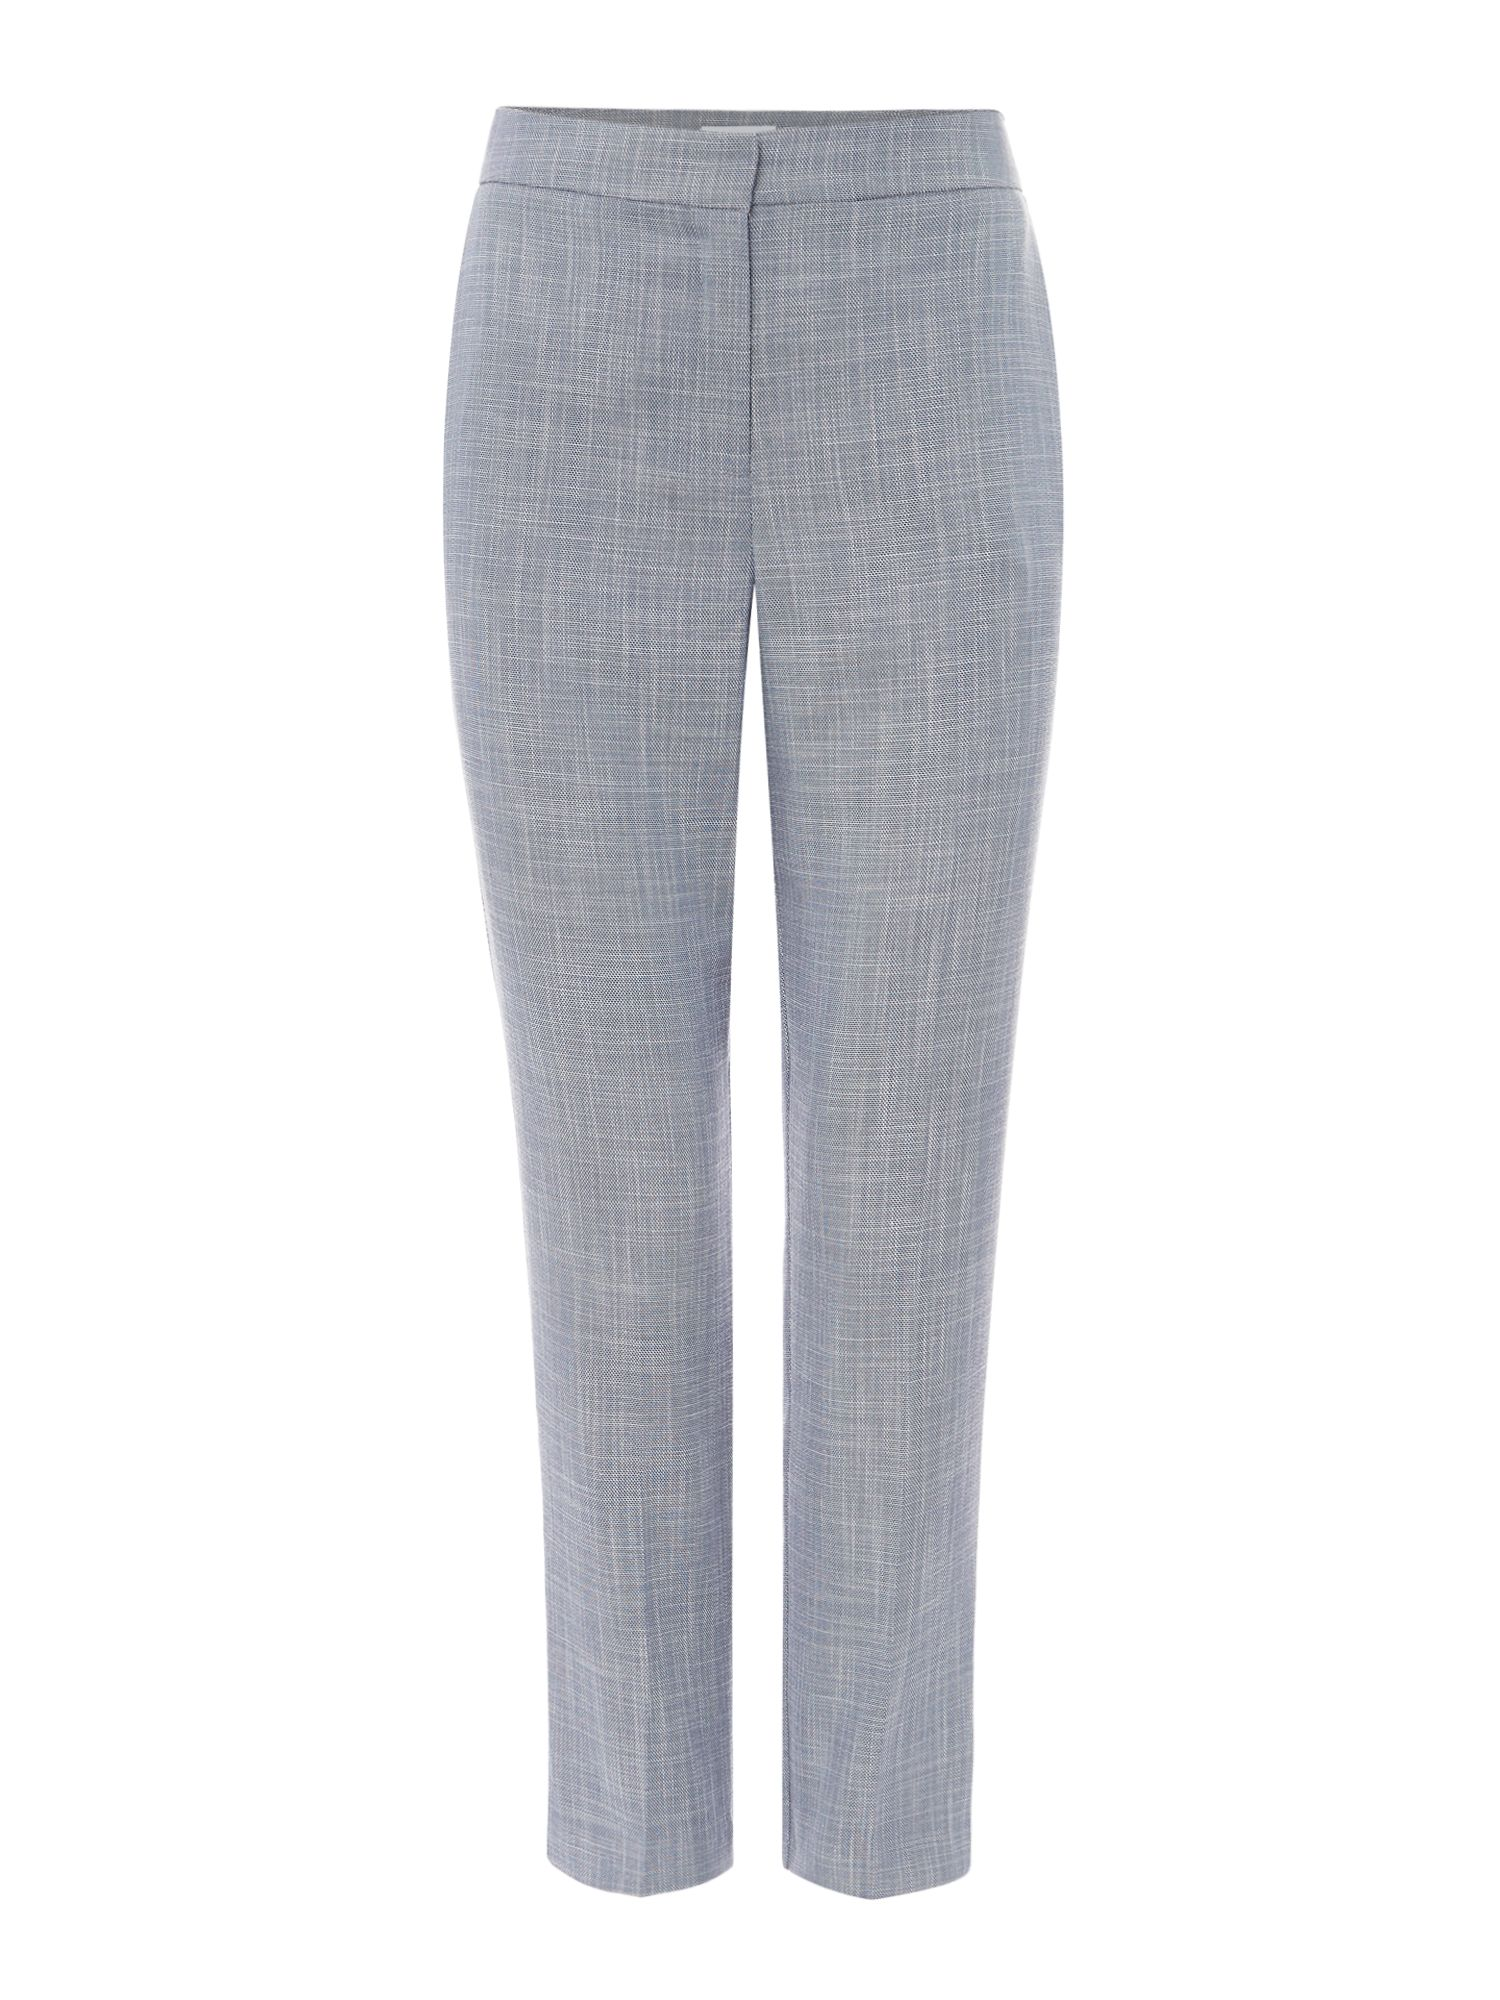 Linea Blue textured cigarette trousers, Blue